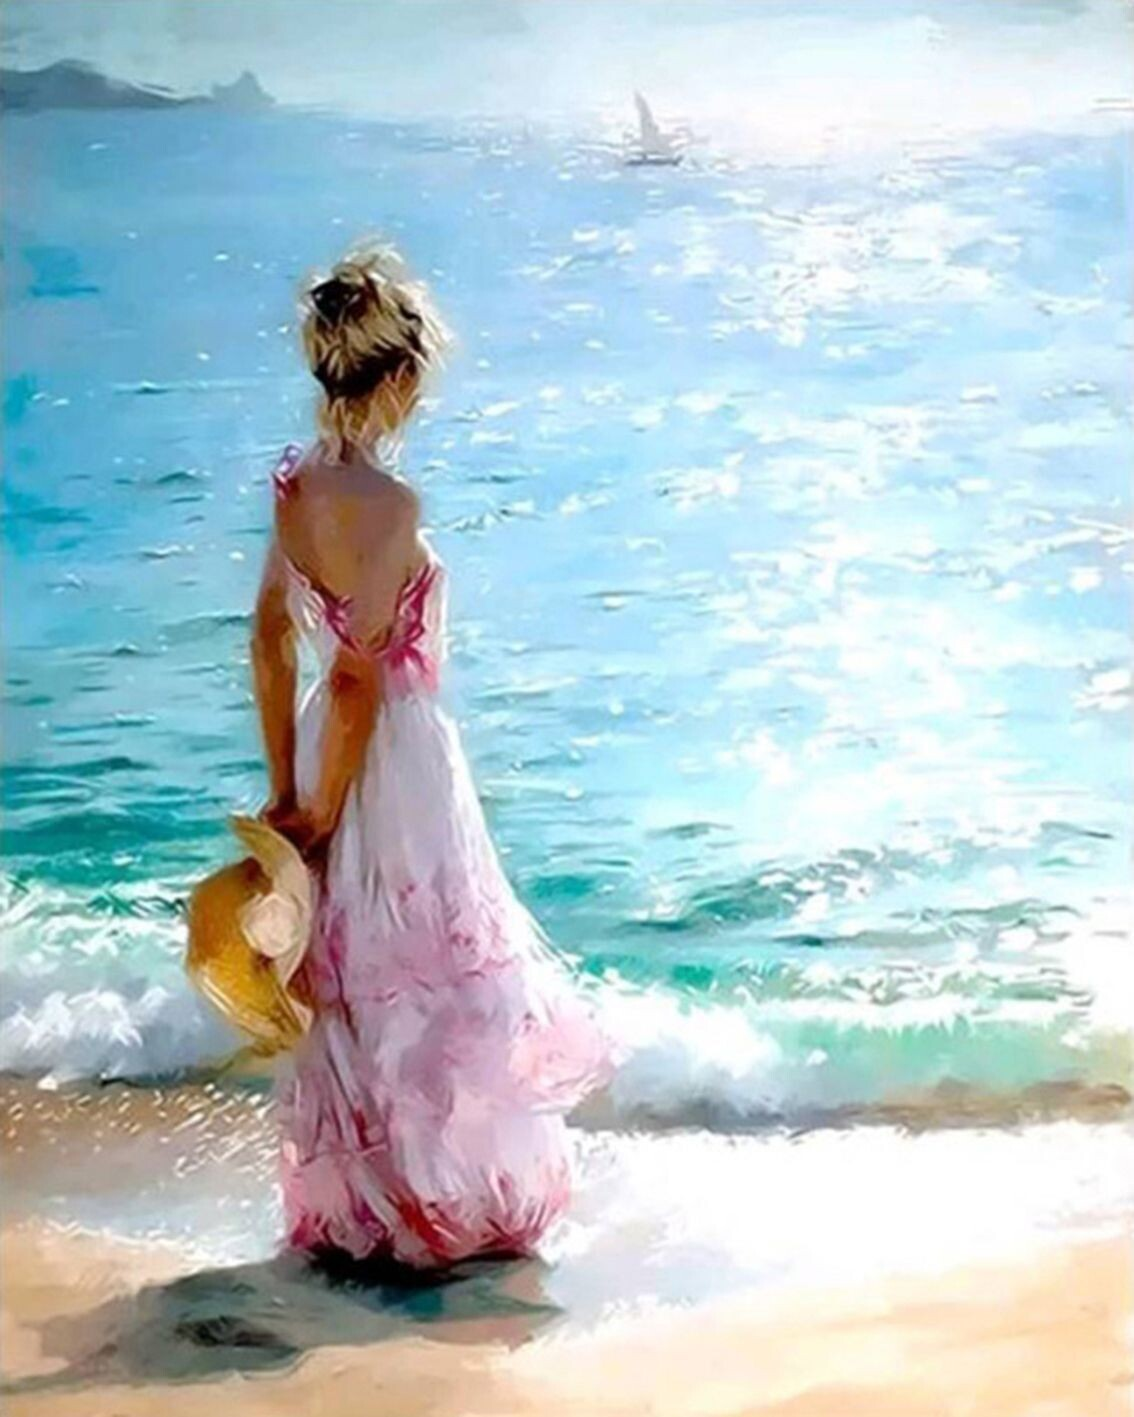 Paint by Number Kit Girl on Beach 40 x 50cm